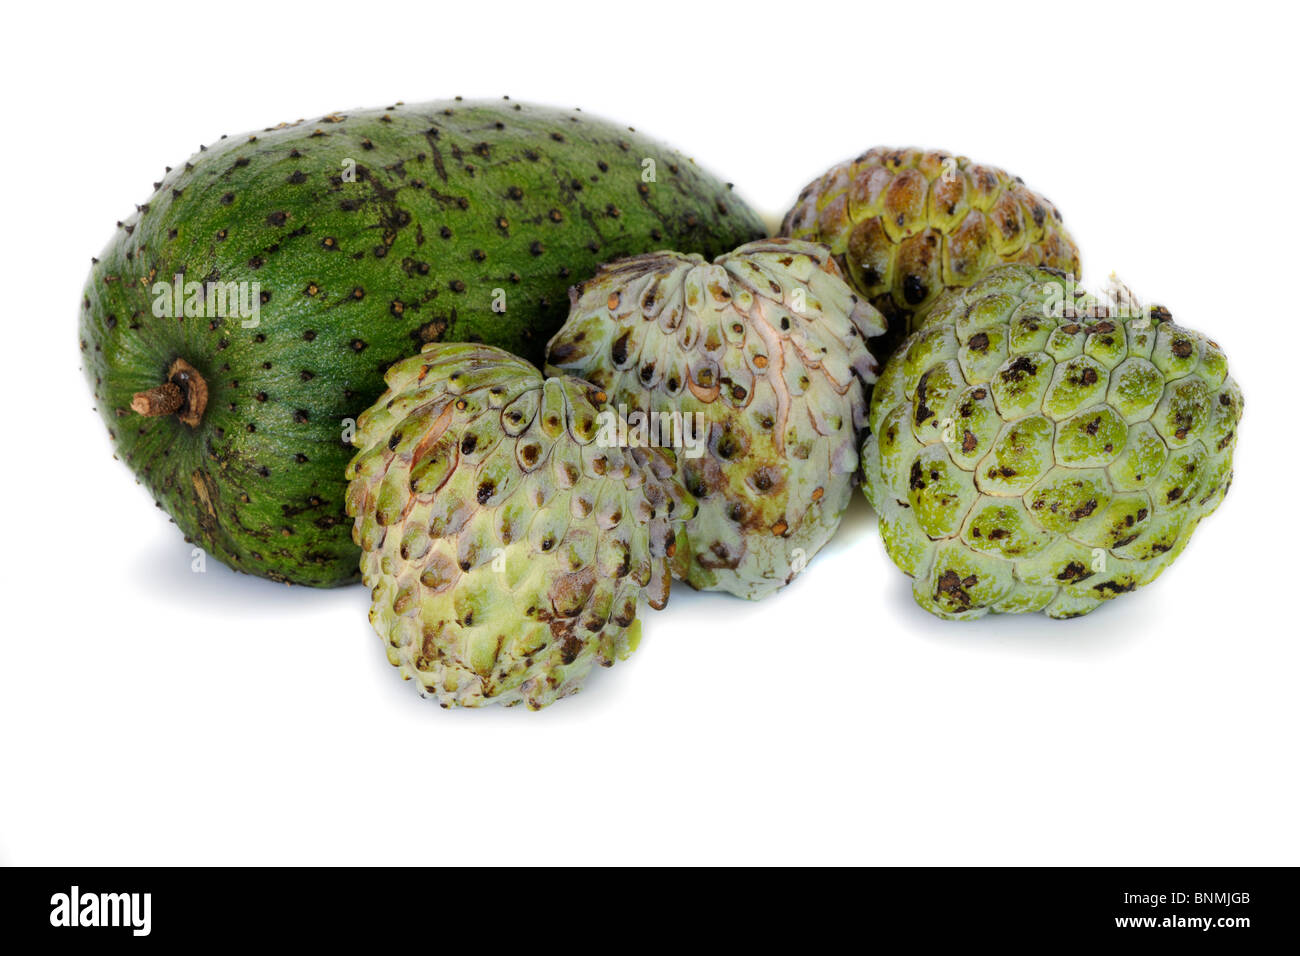 Custard Apple Coloring Pages : Guava tree coloring pages custard apple